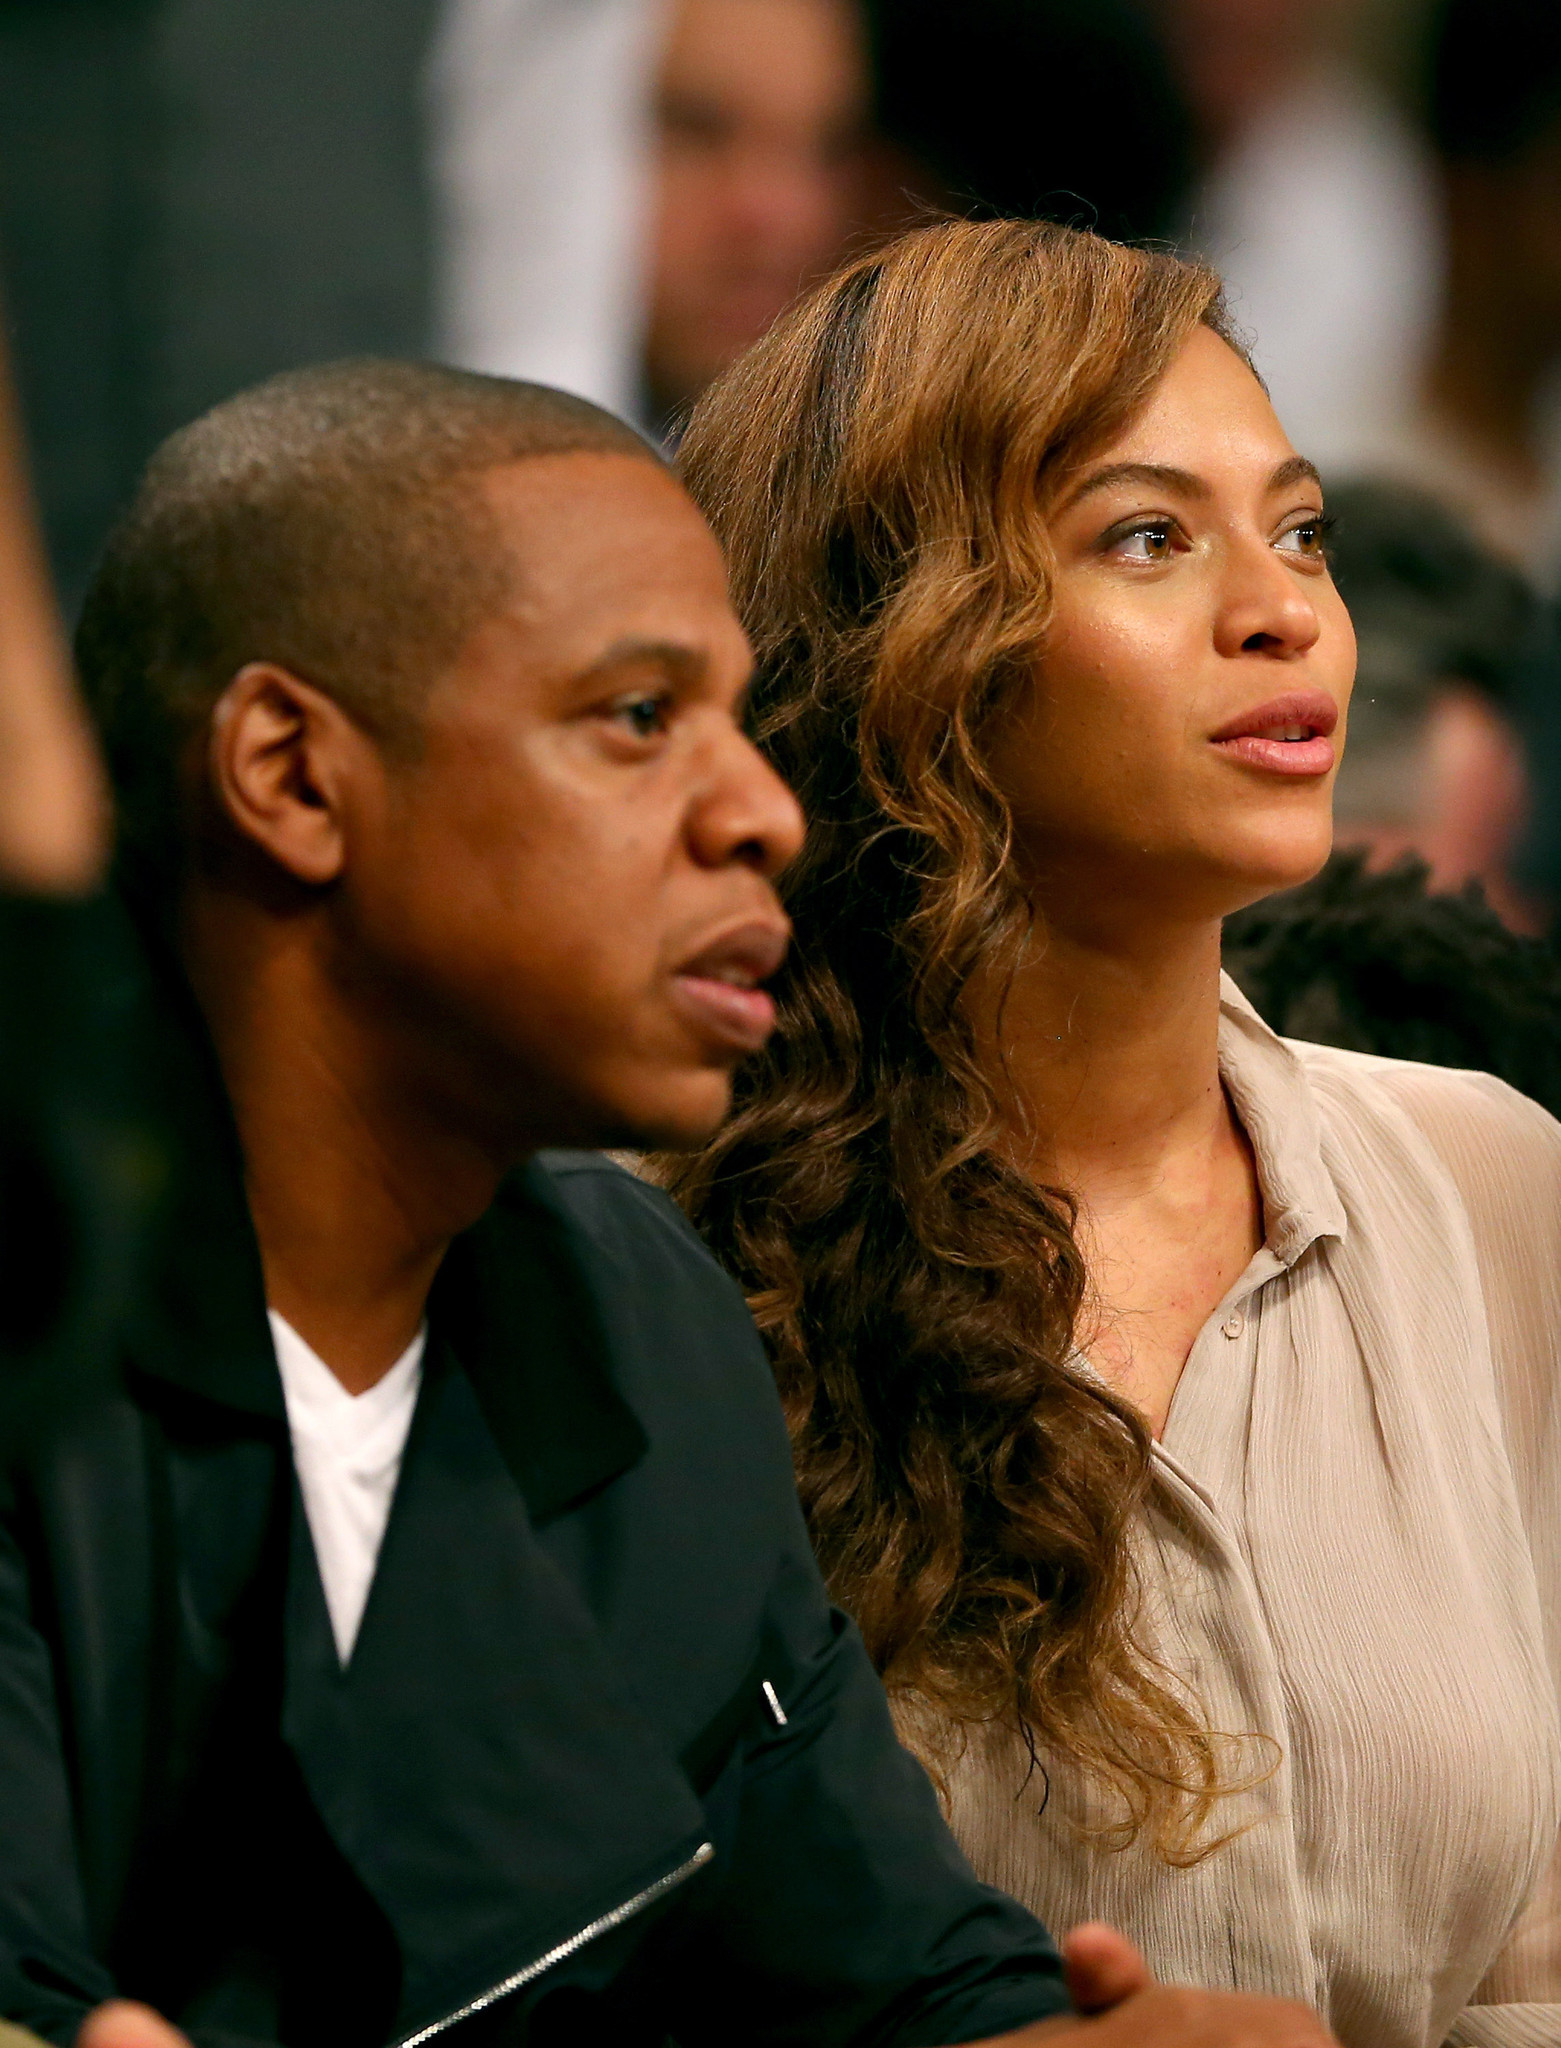 Celebs spotted at Miami Heat games - Beyonce and Jay-Z